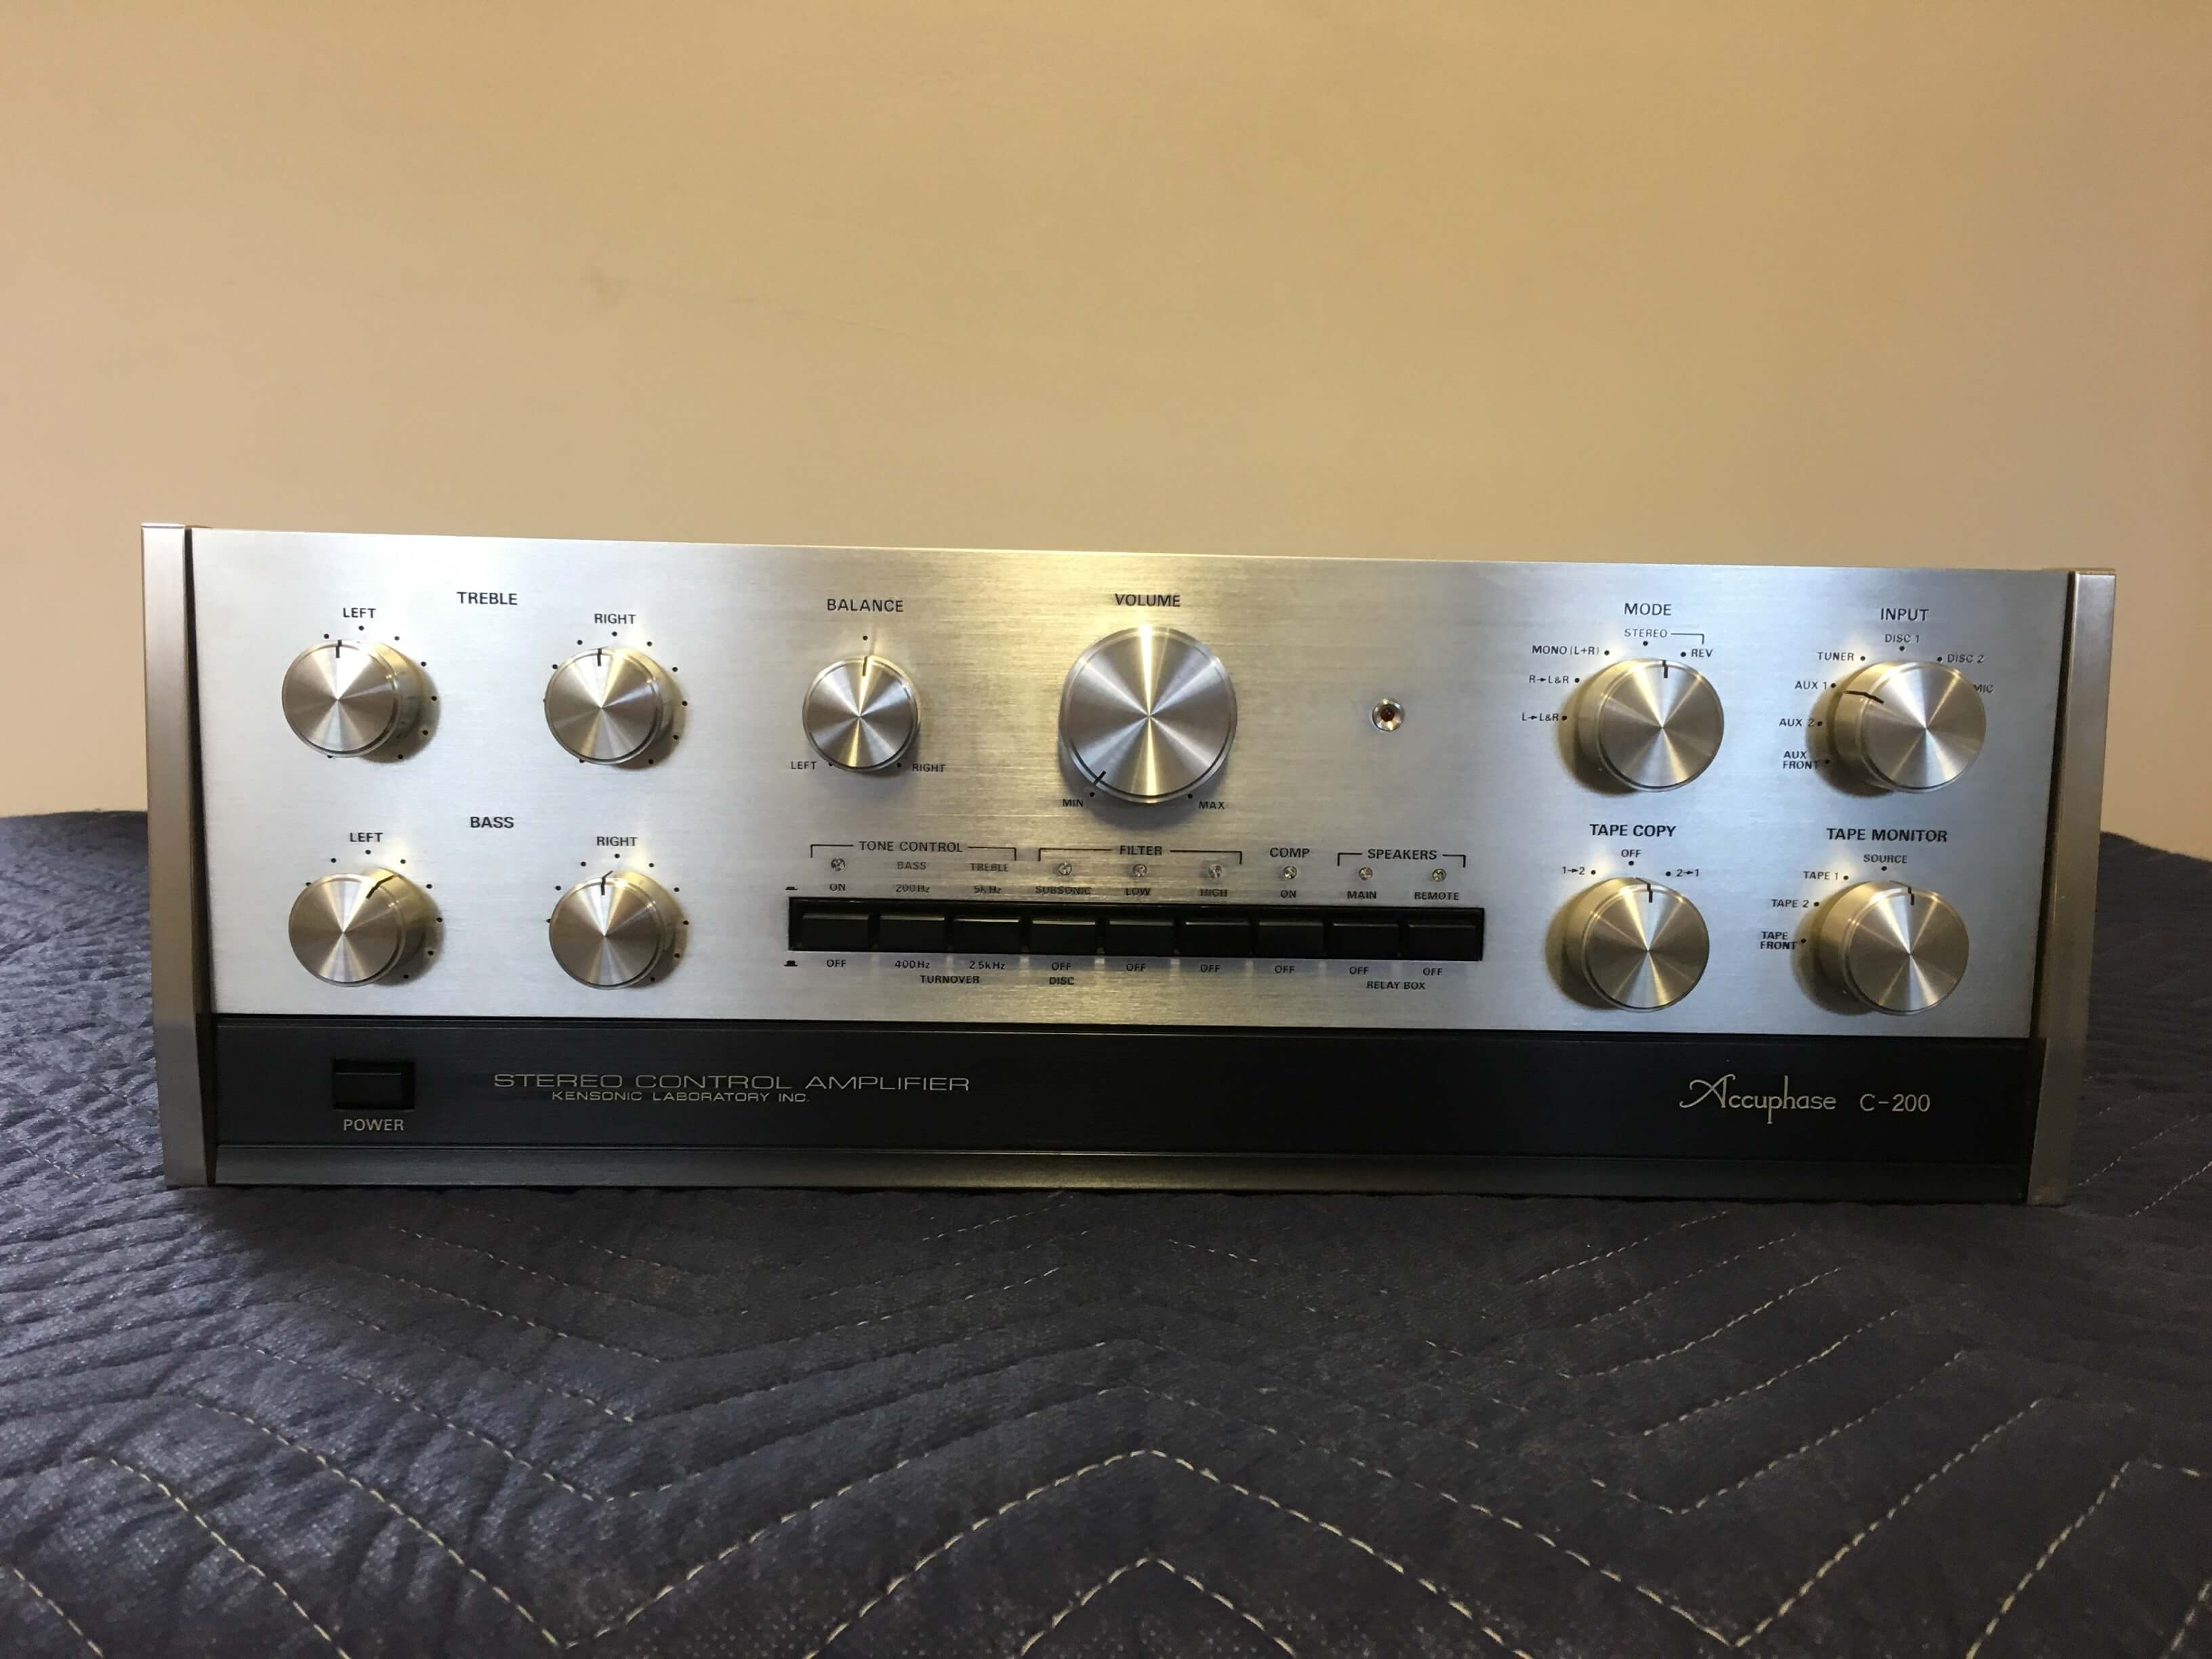 Accuphase C-200 control amplifier (sold only with Accuphase P-300)